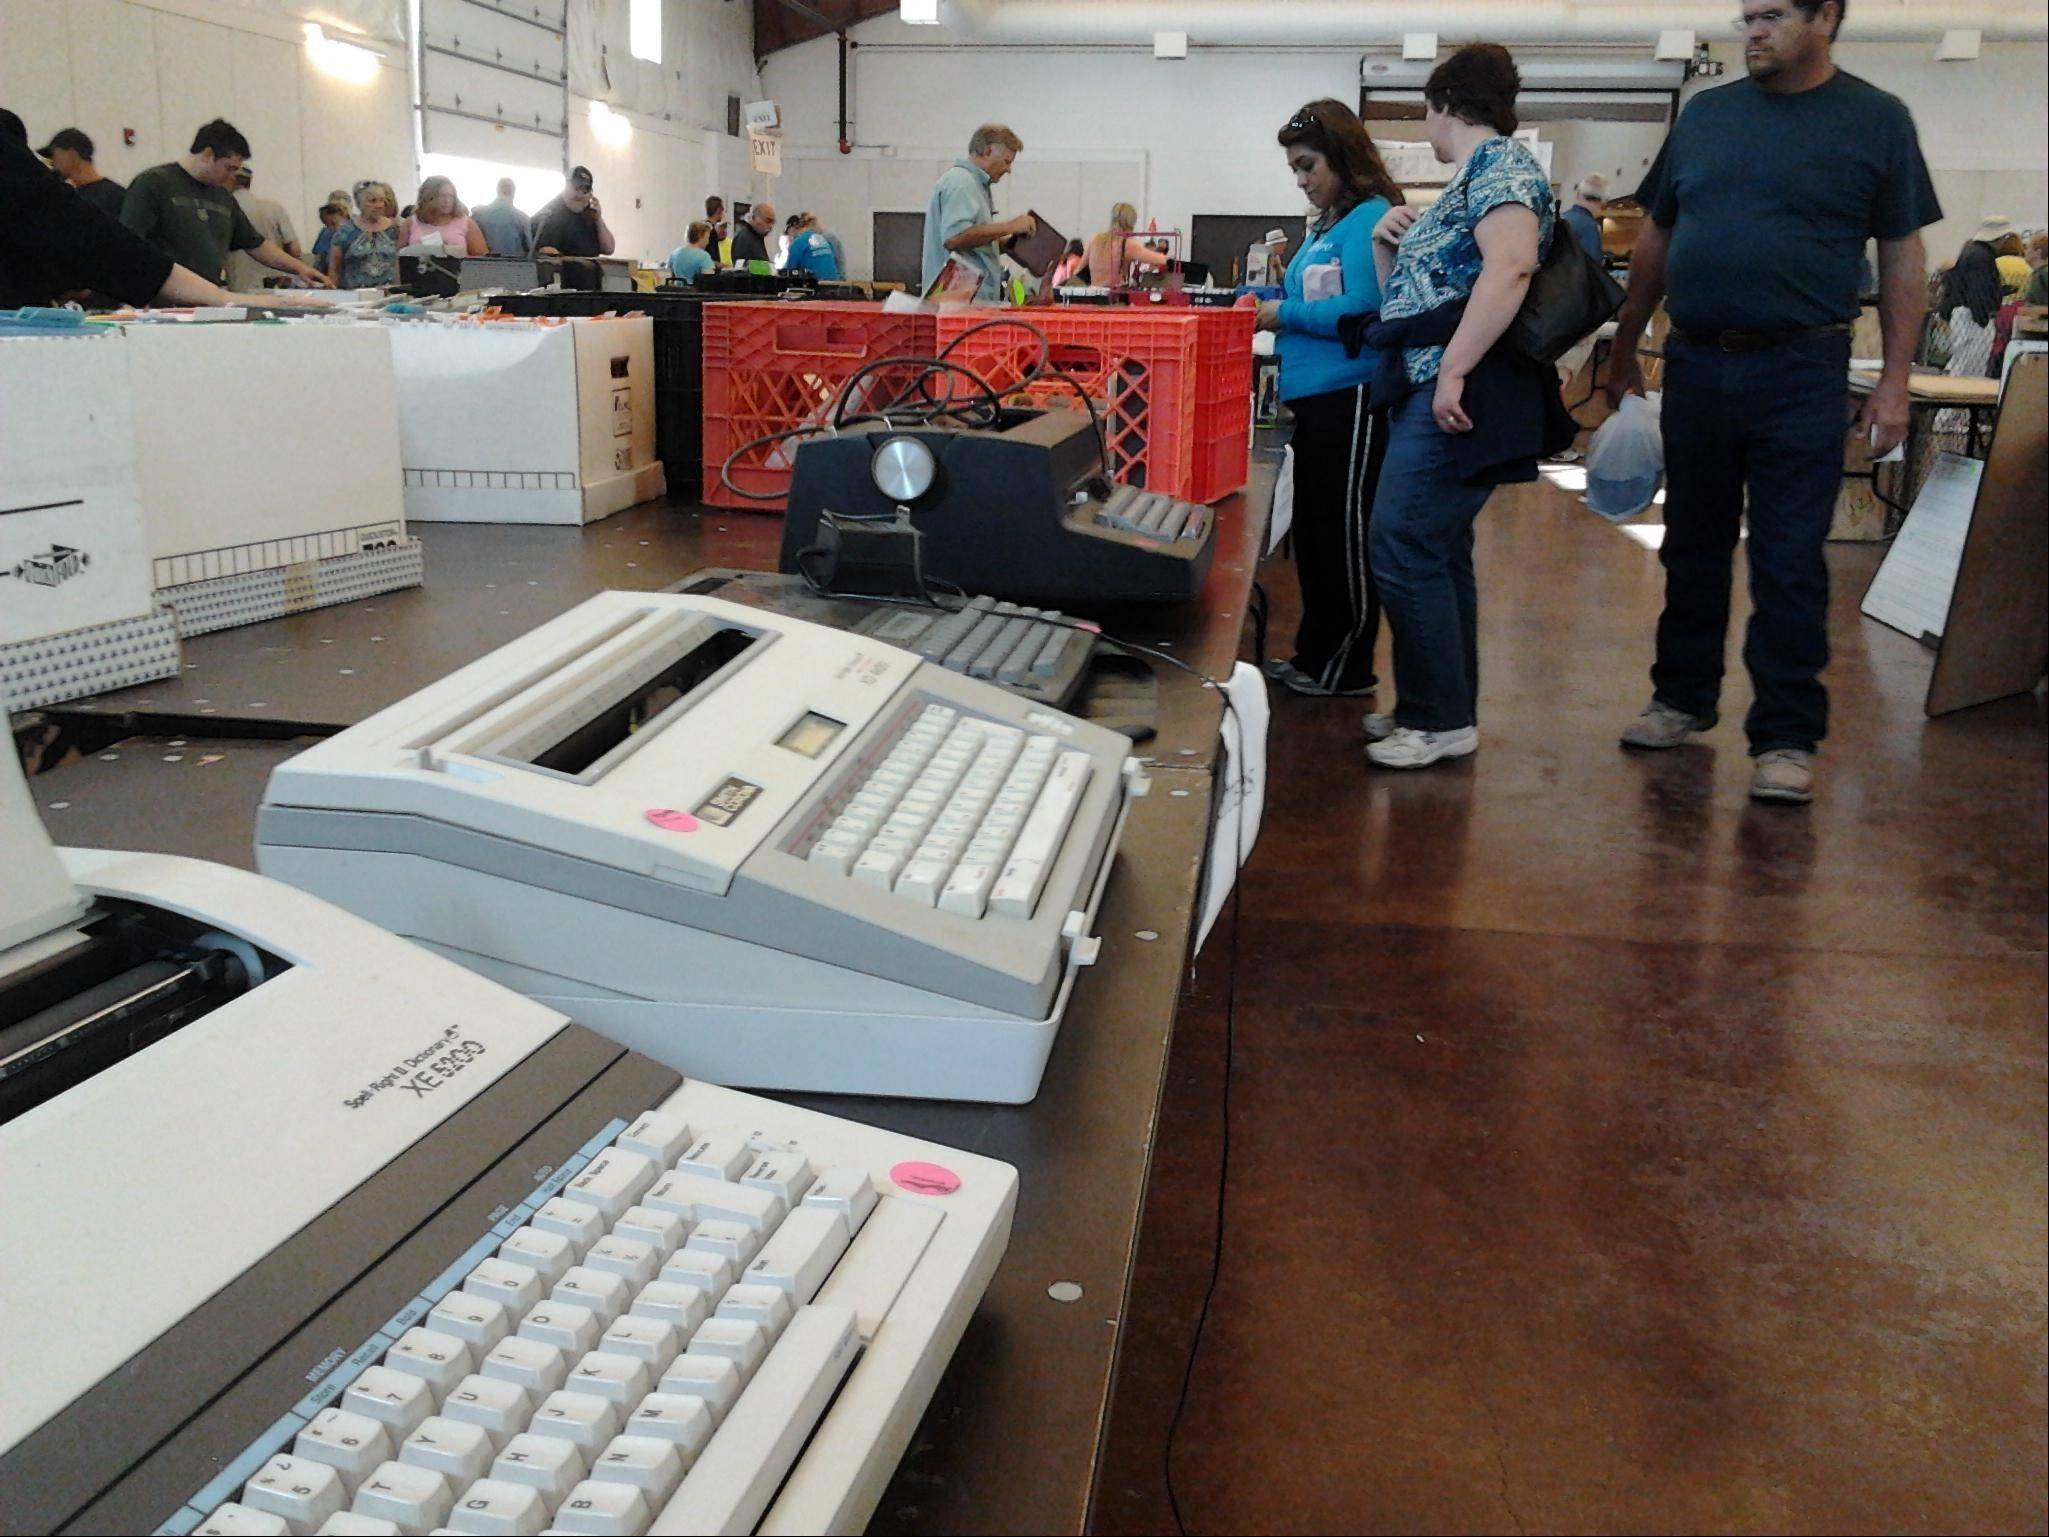 Typewriters from IBM and Smith-Corona were going for $1 at the St. Peter Barn Sale on Saturday at the Kane County Fairgrounds in St. Charles. The sale ends at 2 p.m. Sunday.